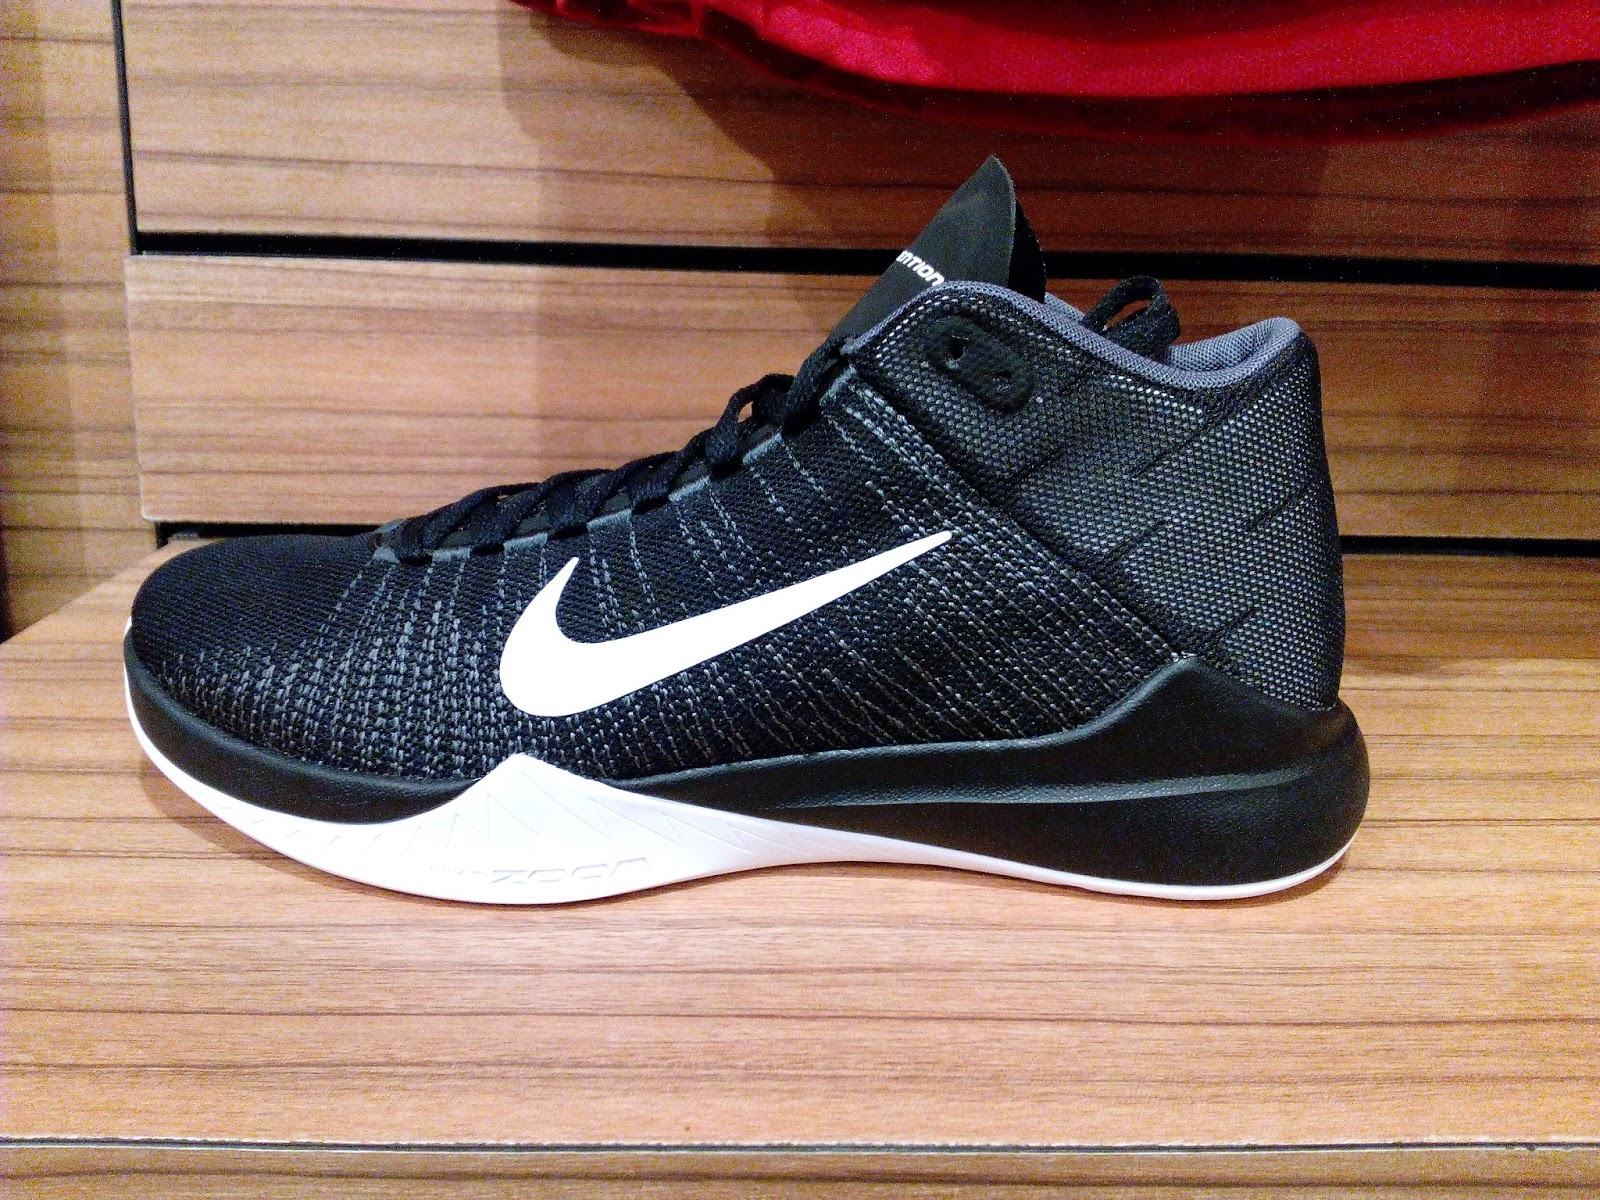 Nike Zoom Ascention Black